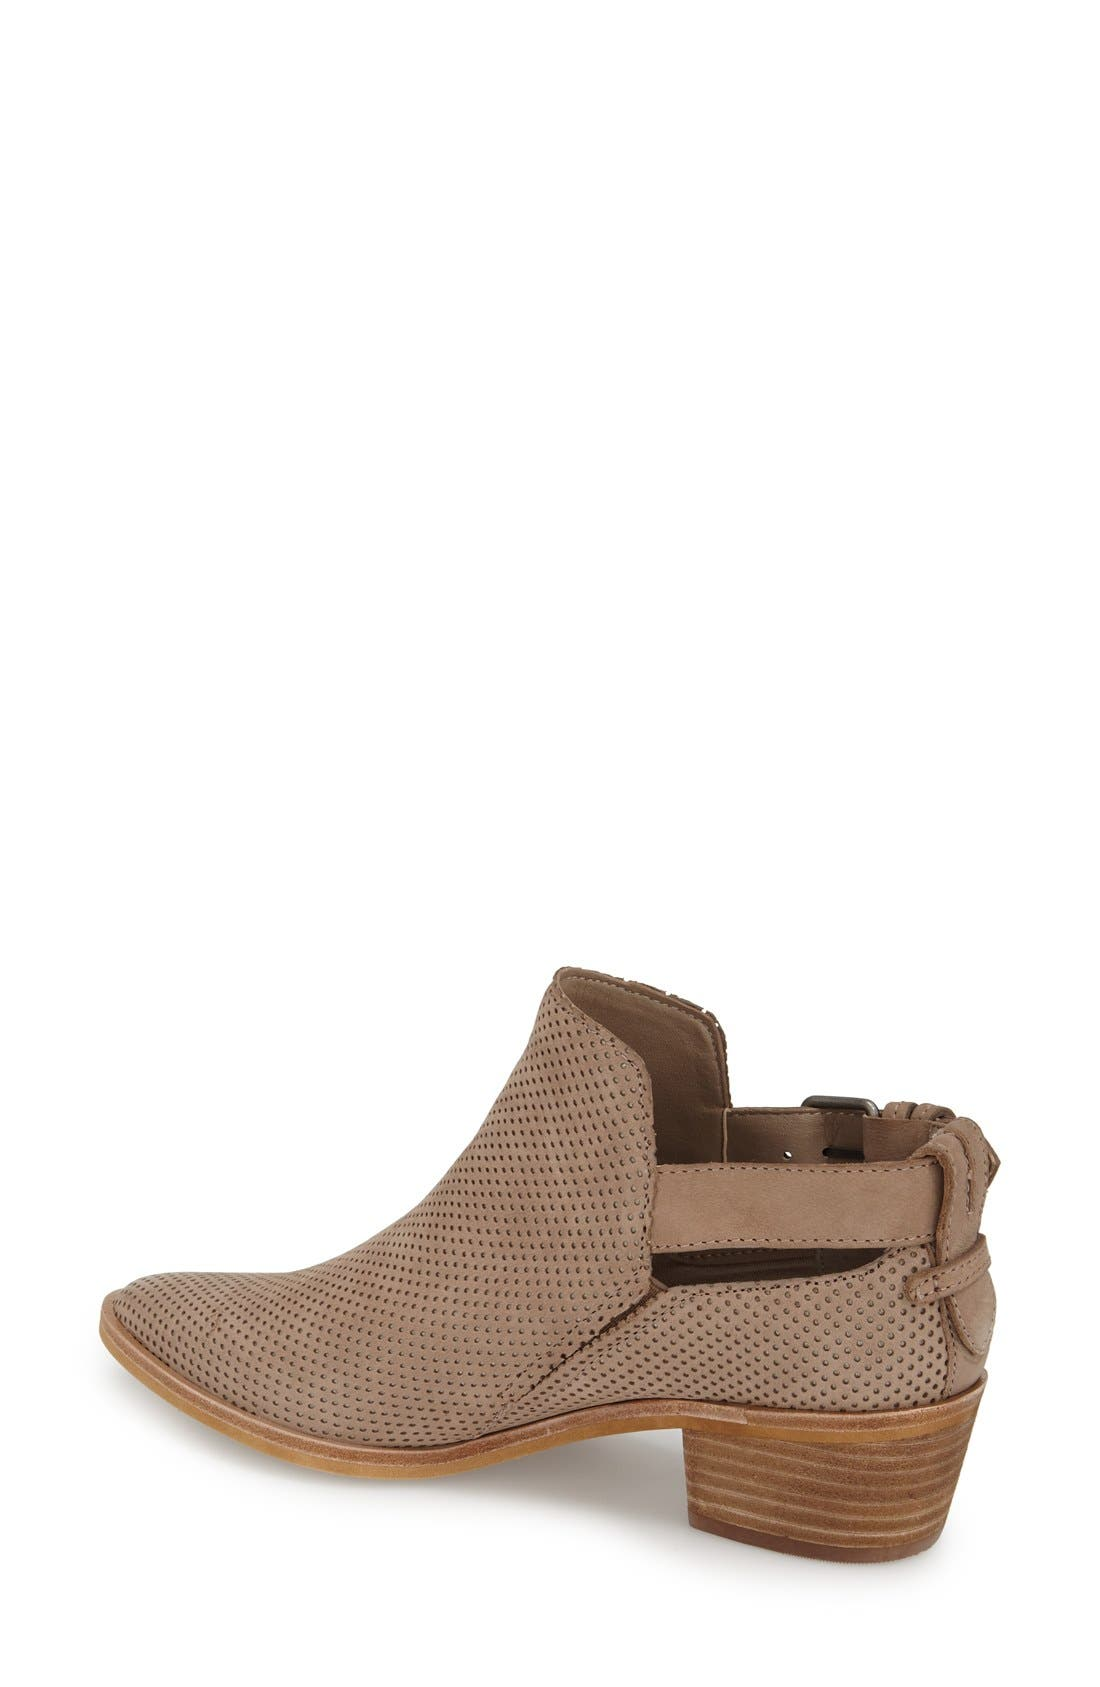 Alternate Image 2  - Dolce Vita 'Kara' Perforated Bootie (Women)